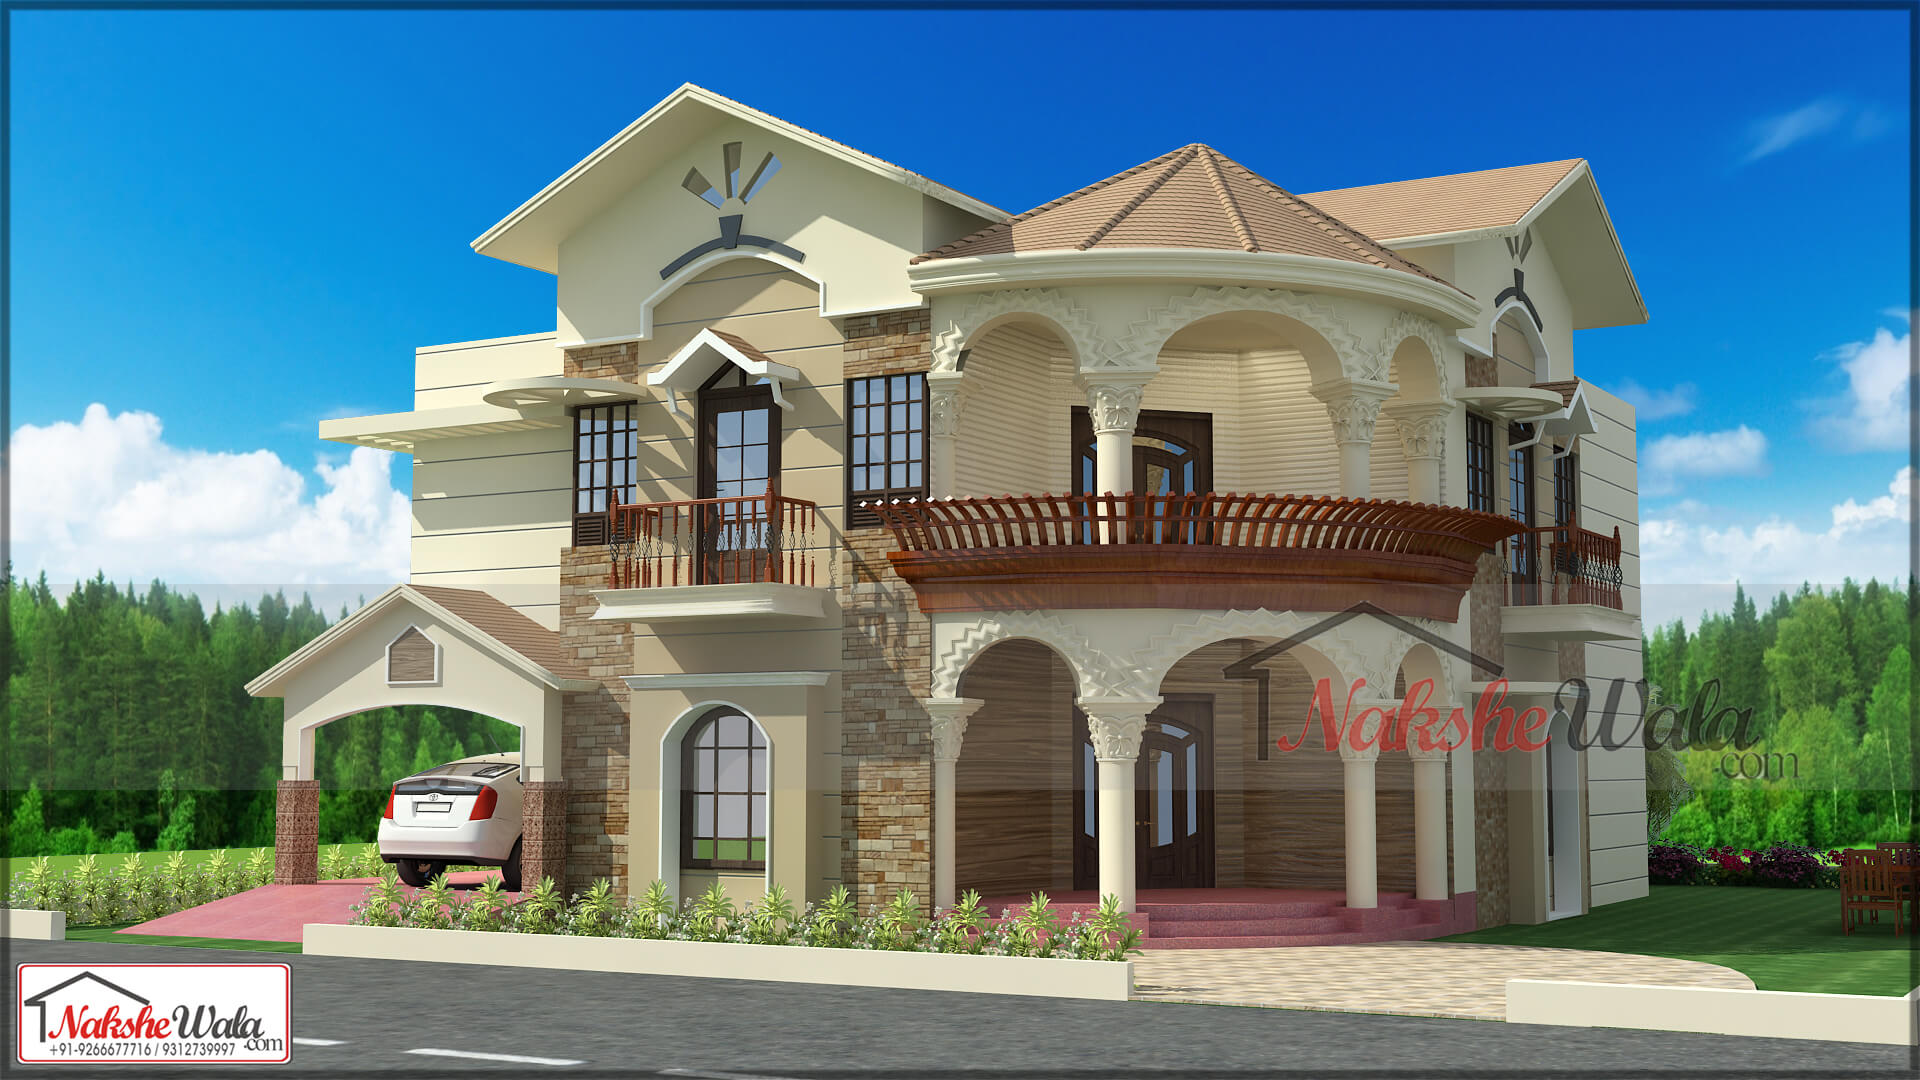 House design floor plan house map home plan front Home makers interior designers decorators pvt ltd